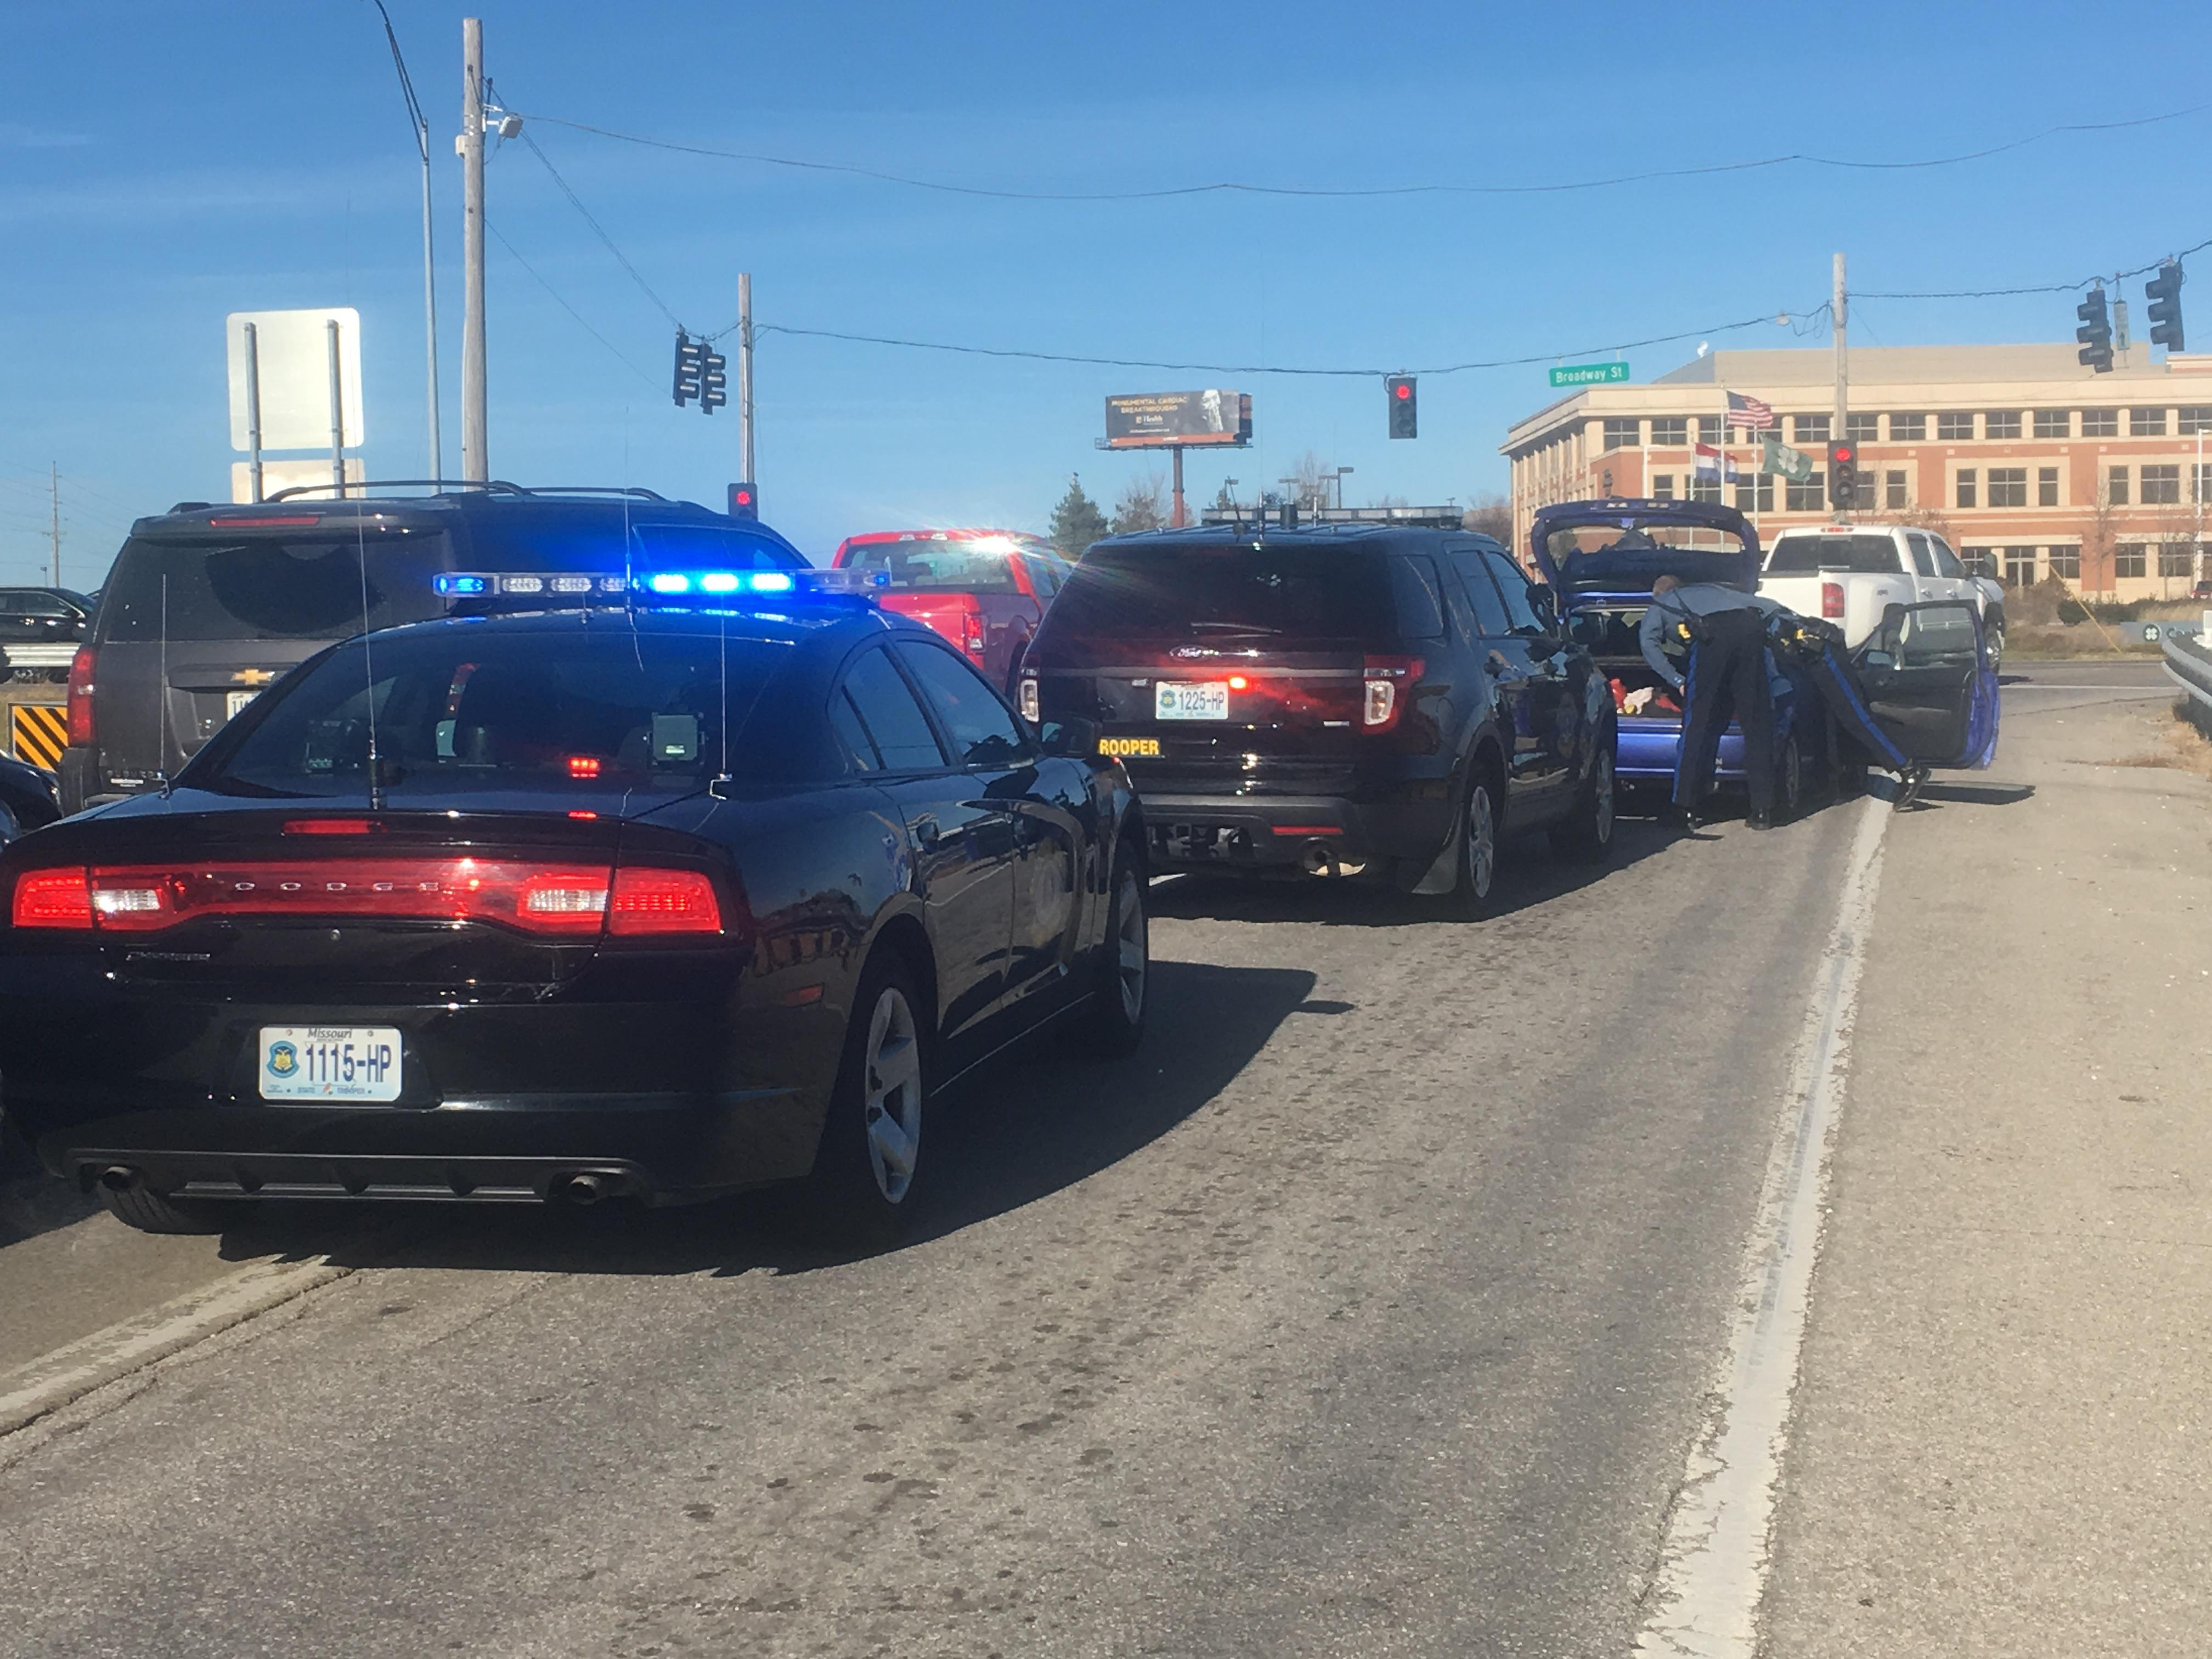 <p>The Missouri State Highway Patrol said a man was arrested Tuesday afternoon following a high speed chase. (Mark Slavit/KRCG 13)</p>